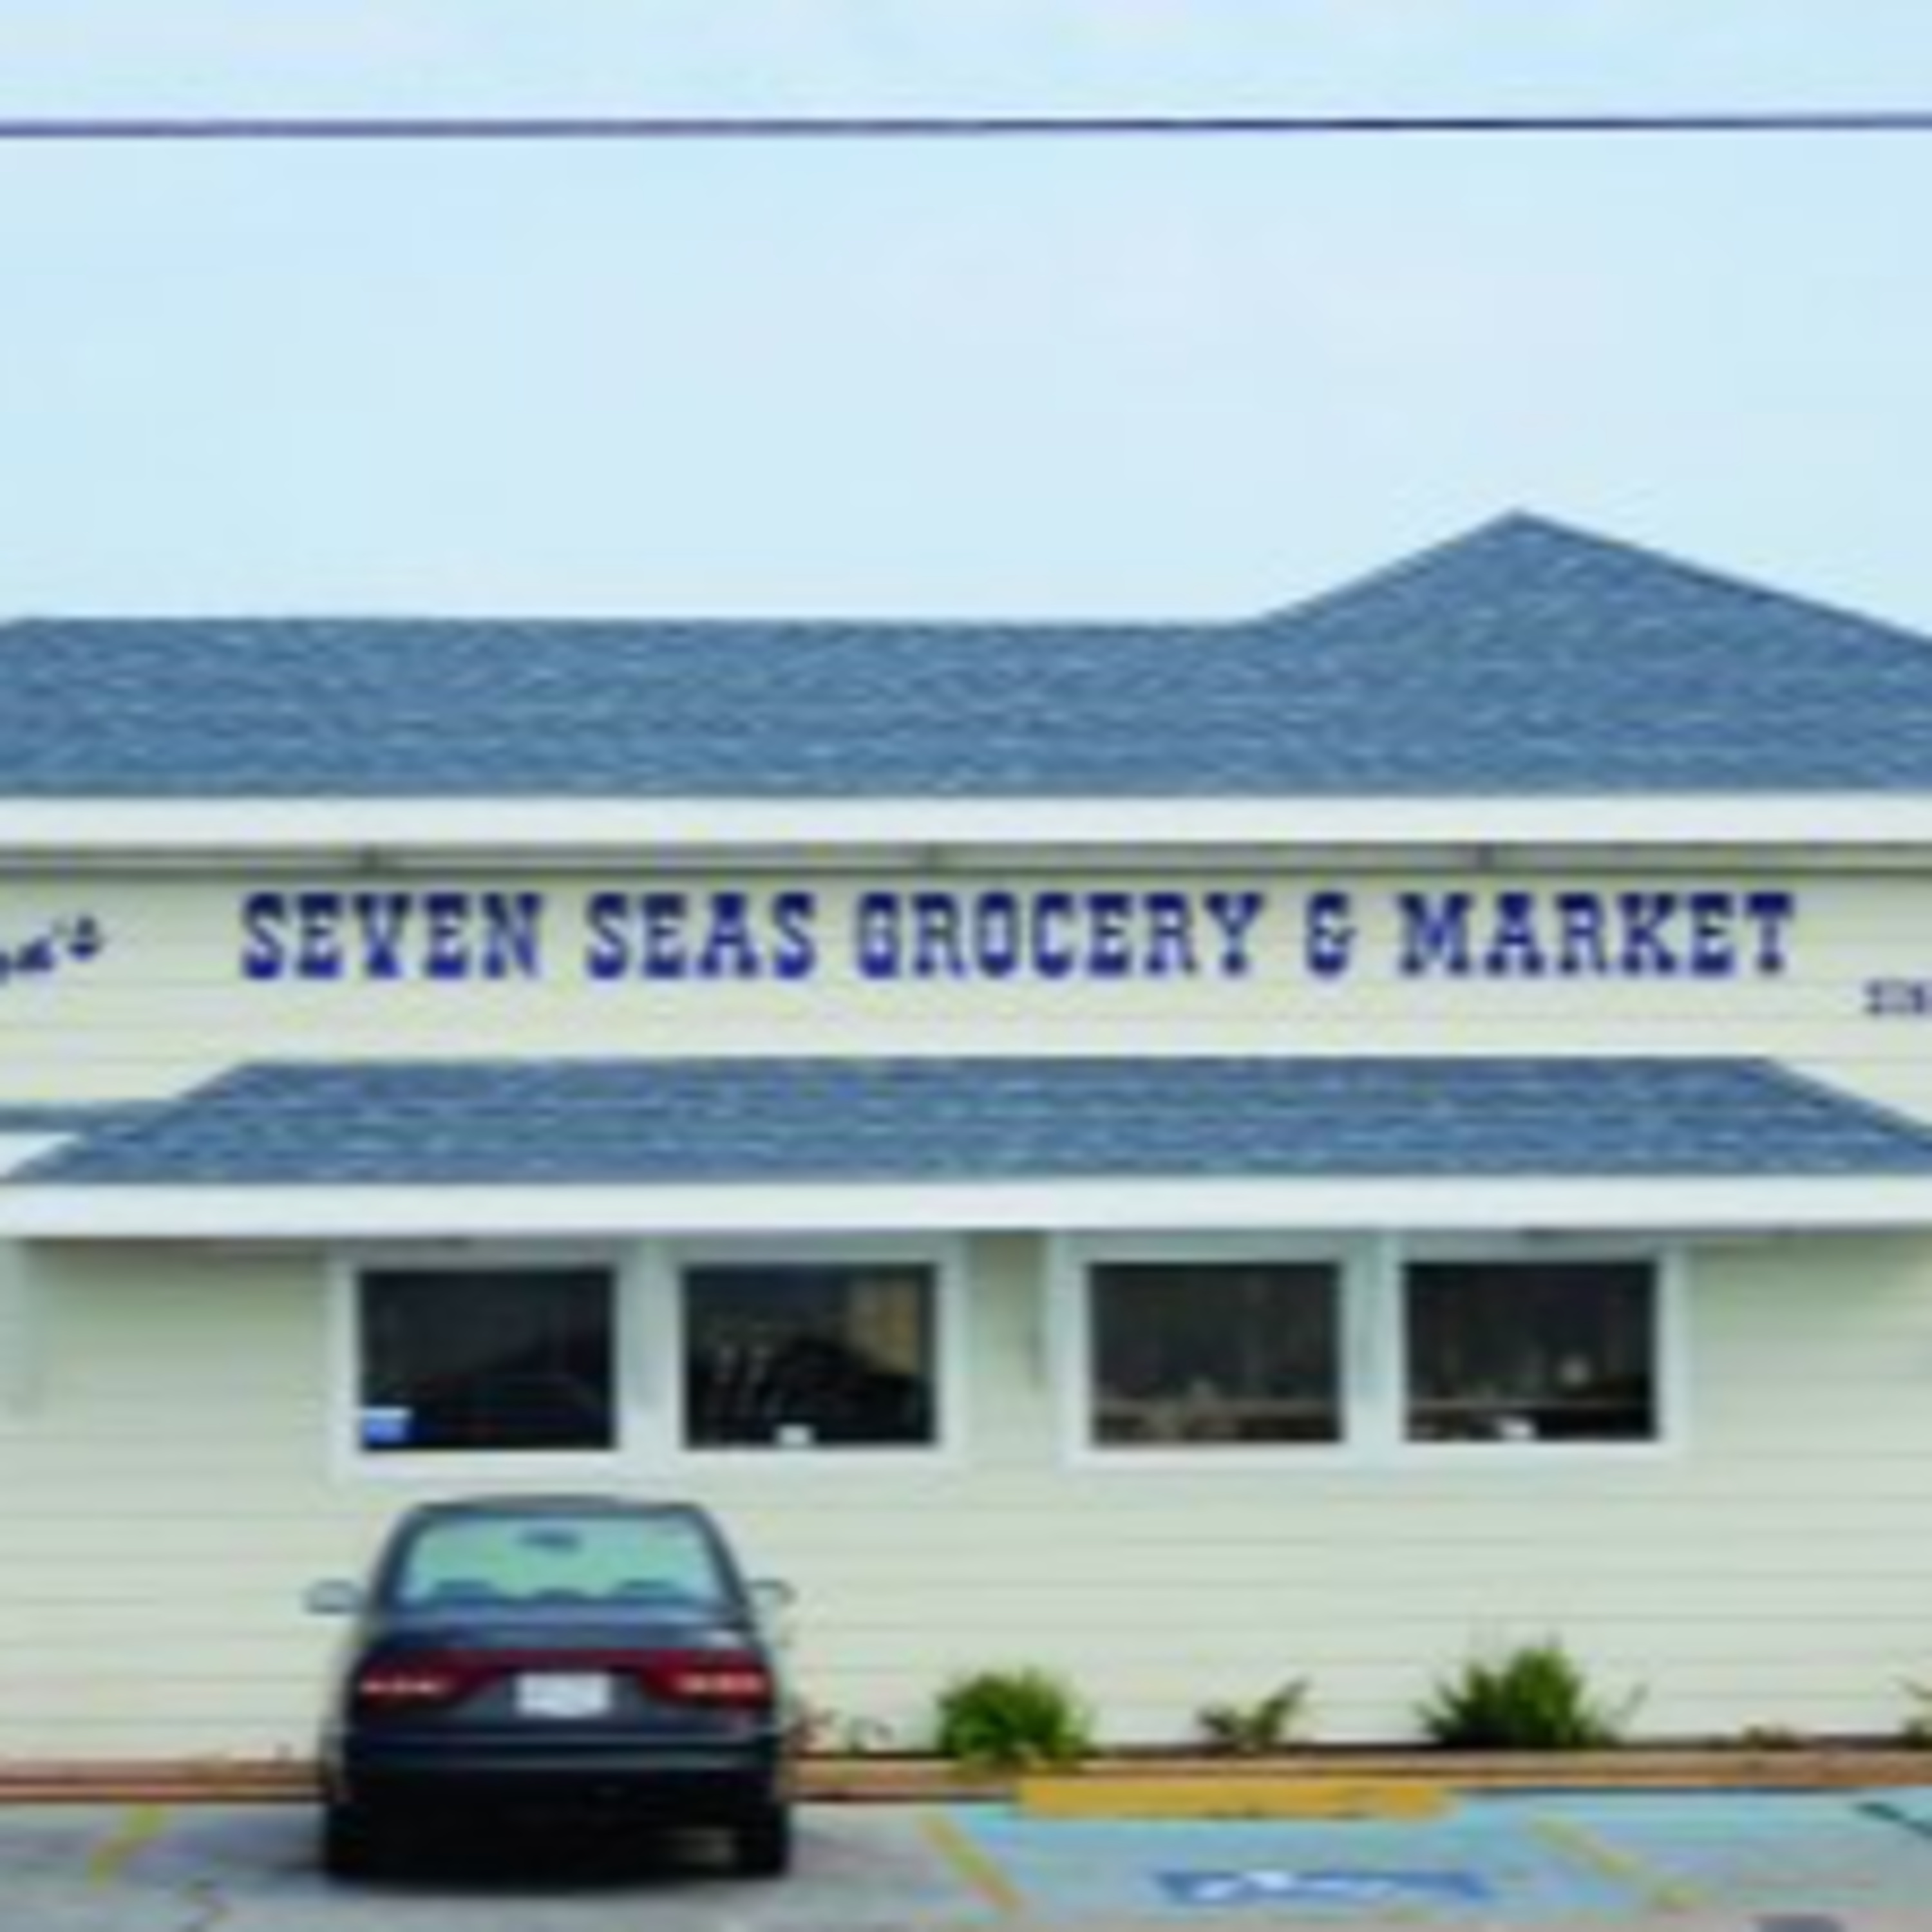 Episode #18 Ghosts on Galveston's West End - Haunted Seven Seas Grocery